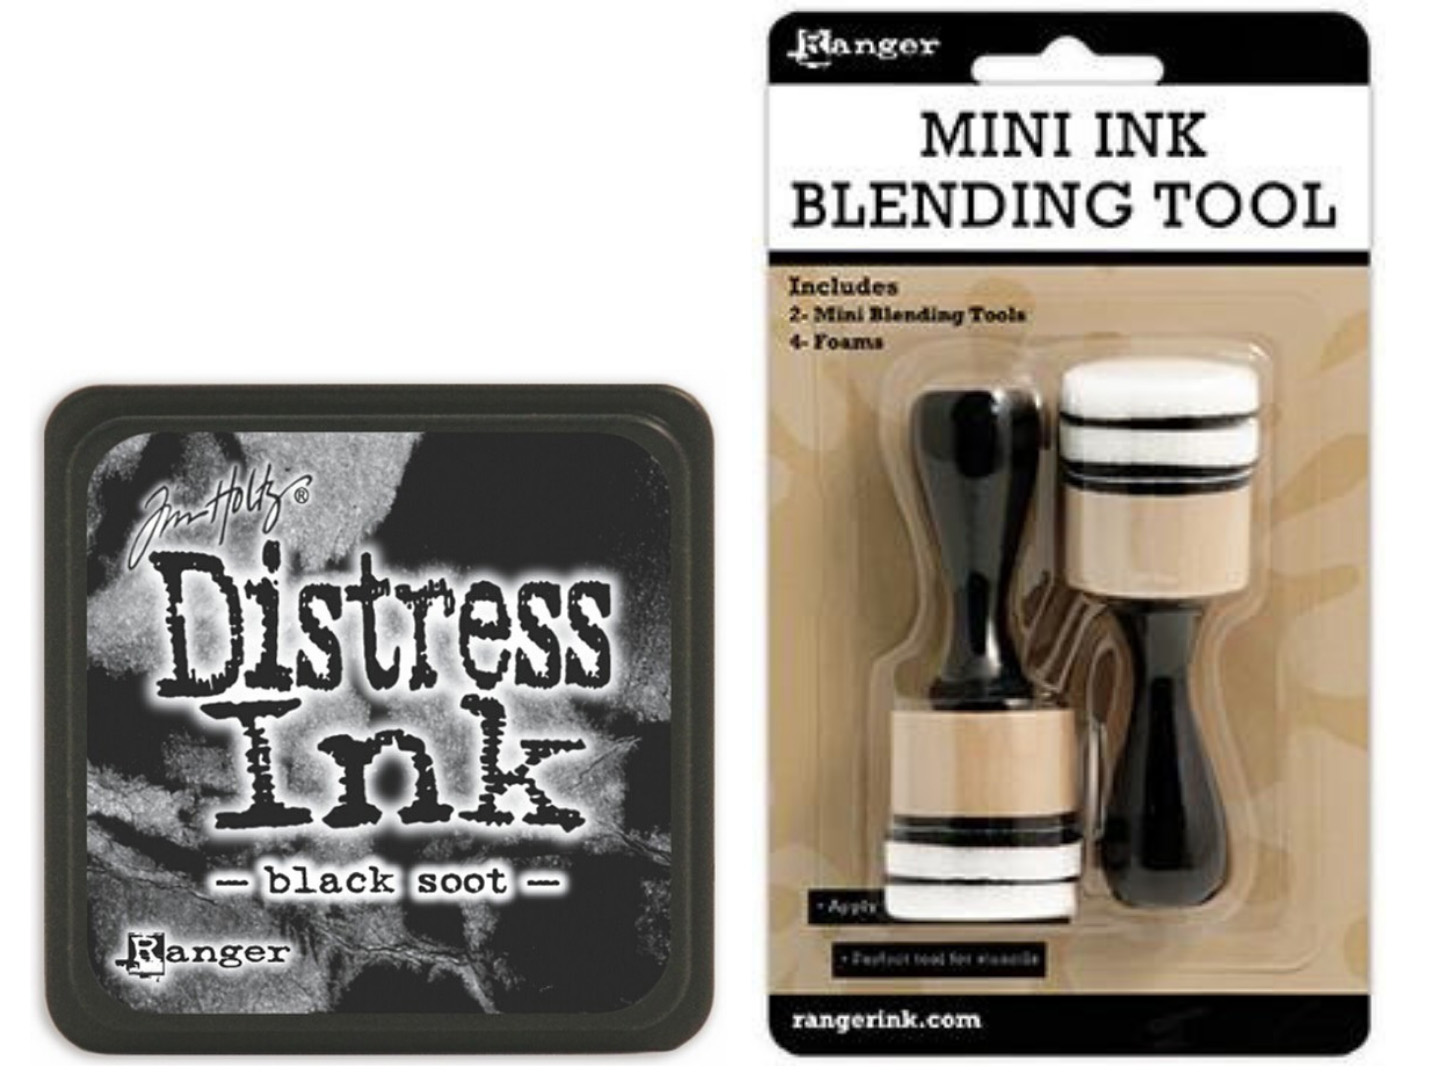 Ranger Distress Ink and Blending Tool